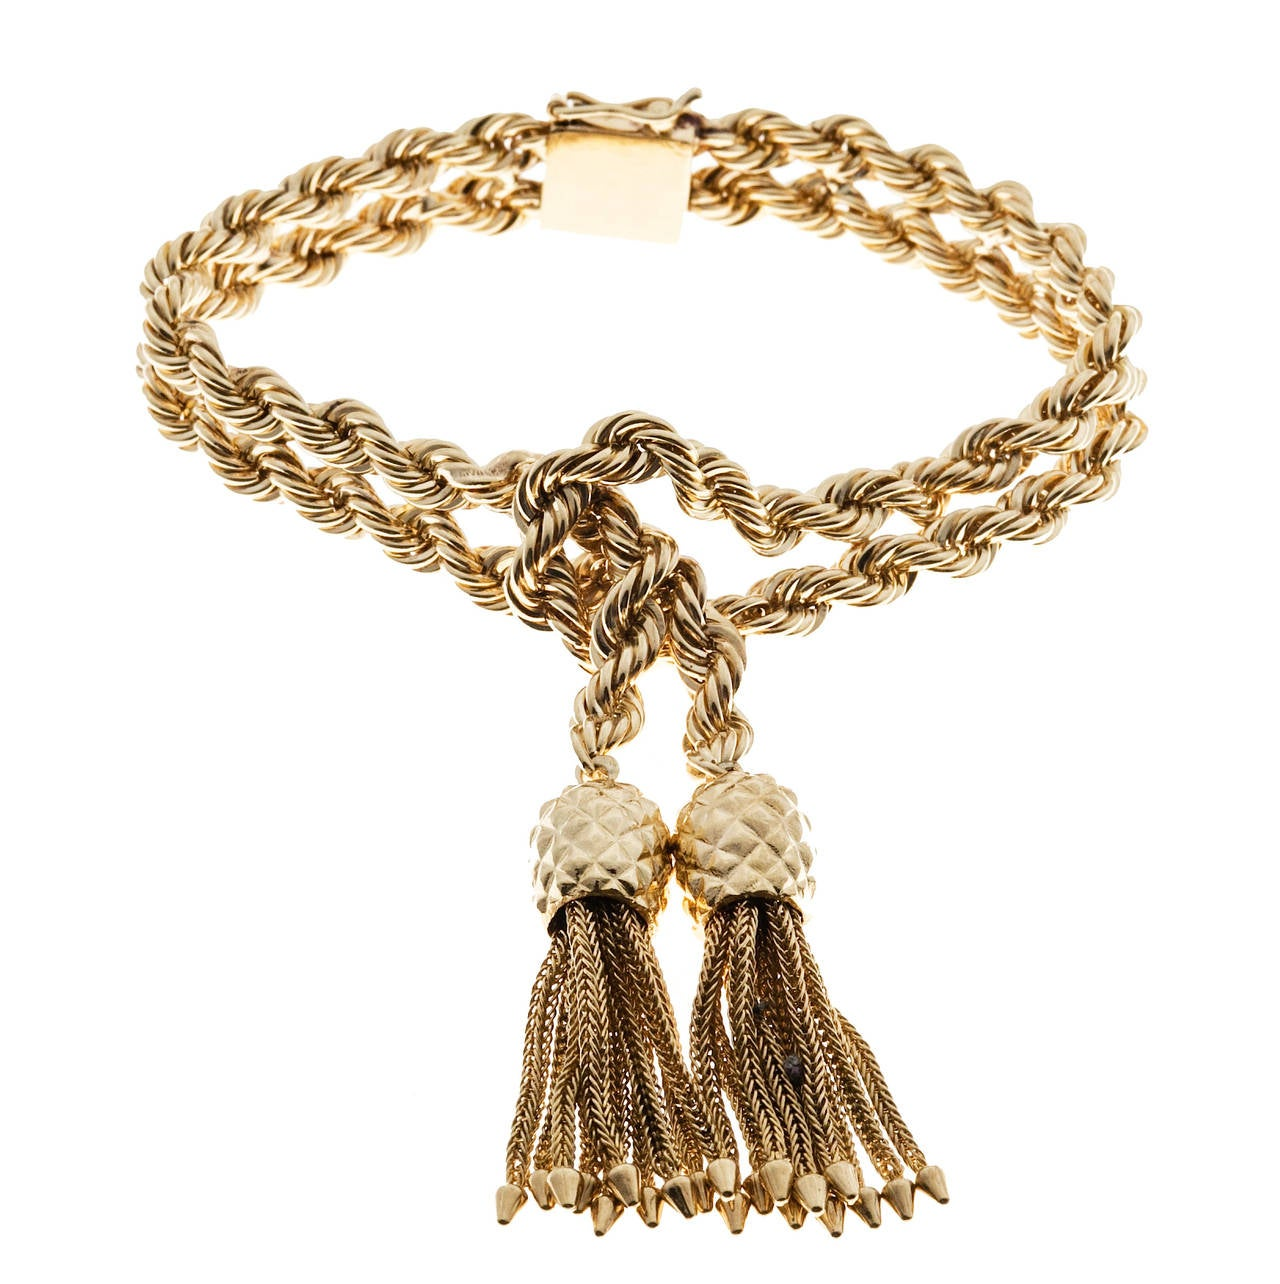 Classic Tiffany & Co solid rope bracelet with two rows of solid rope knotted in the center and holding two solid 3D tassels. One of the best we have seen.